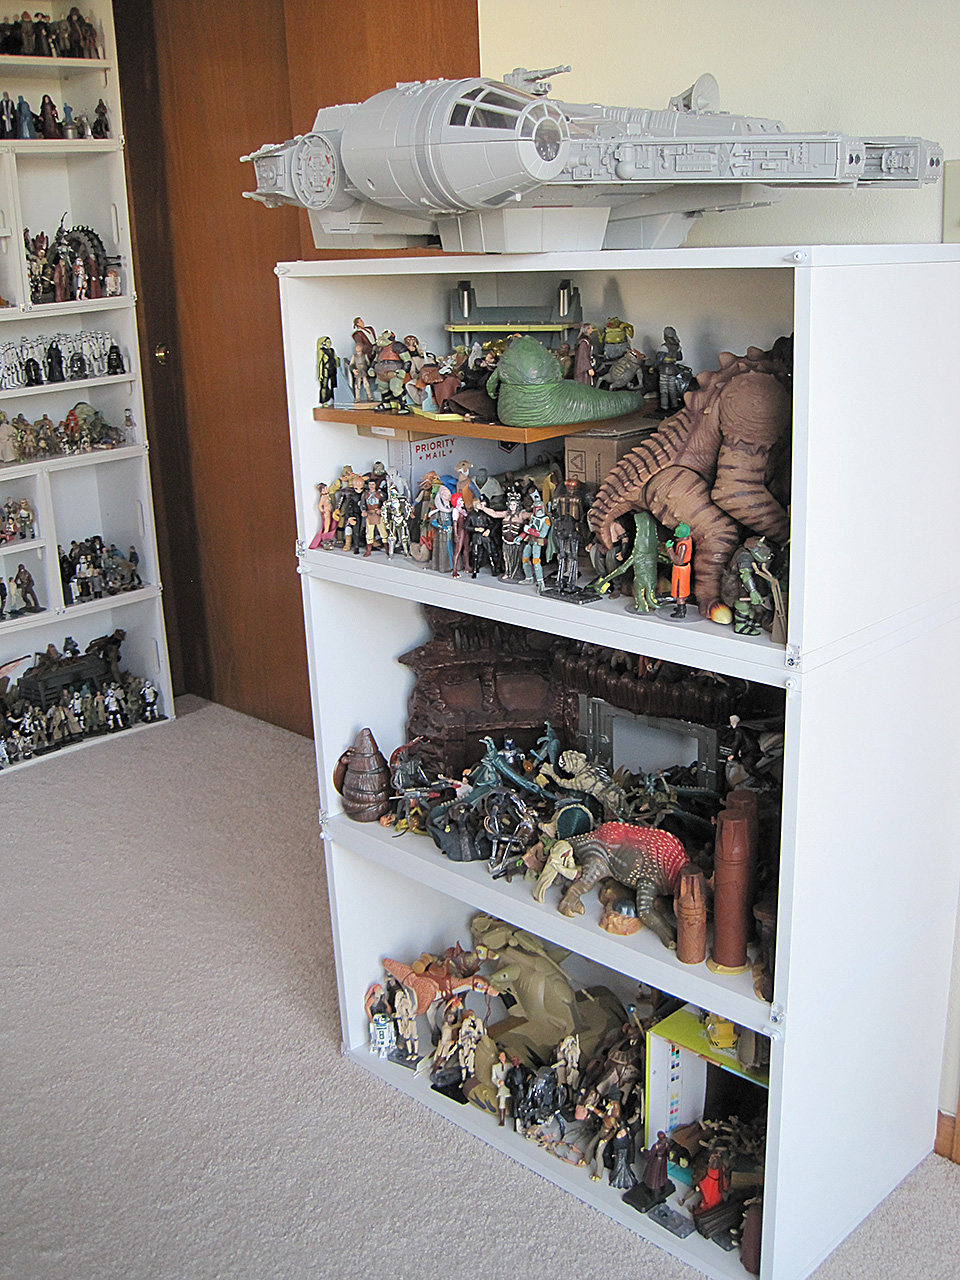 Right side of display